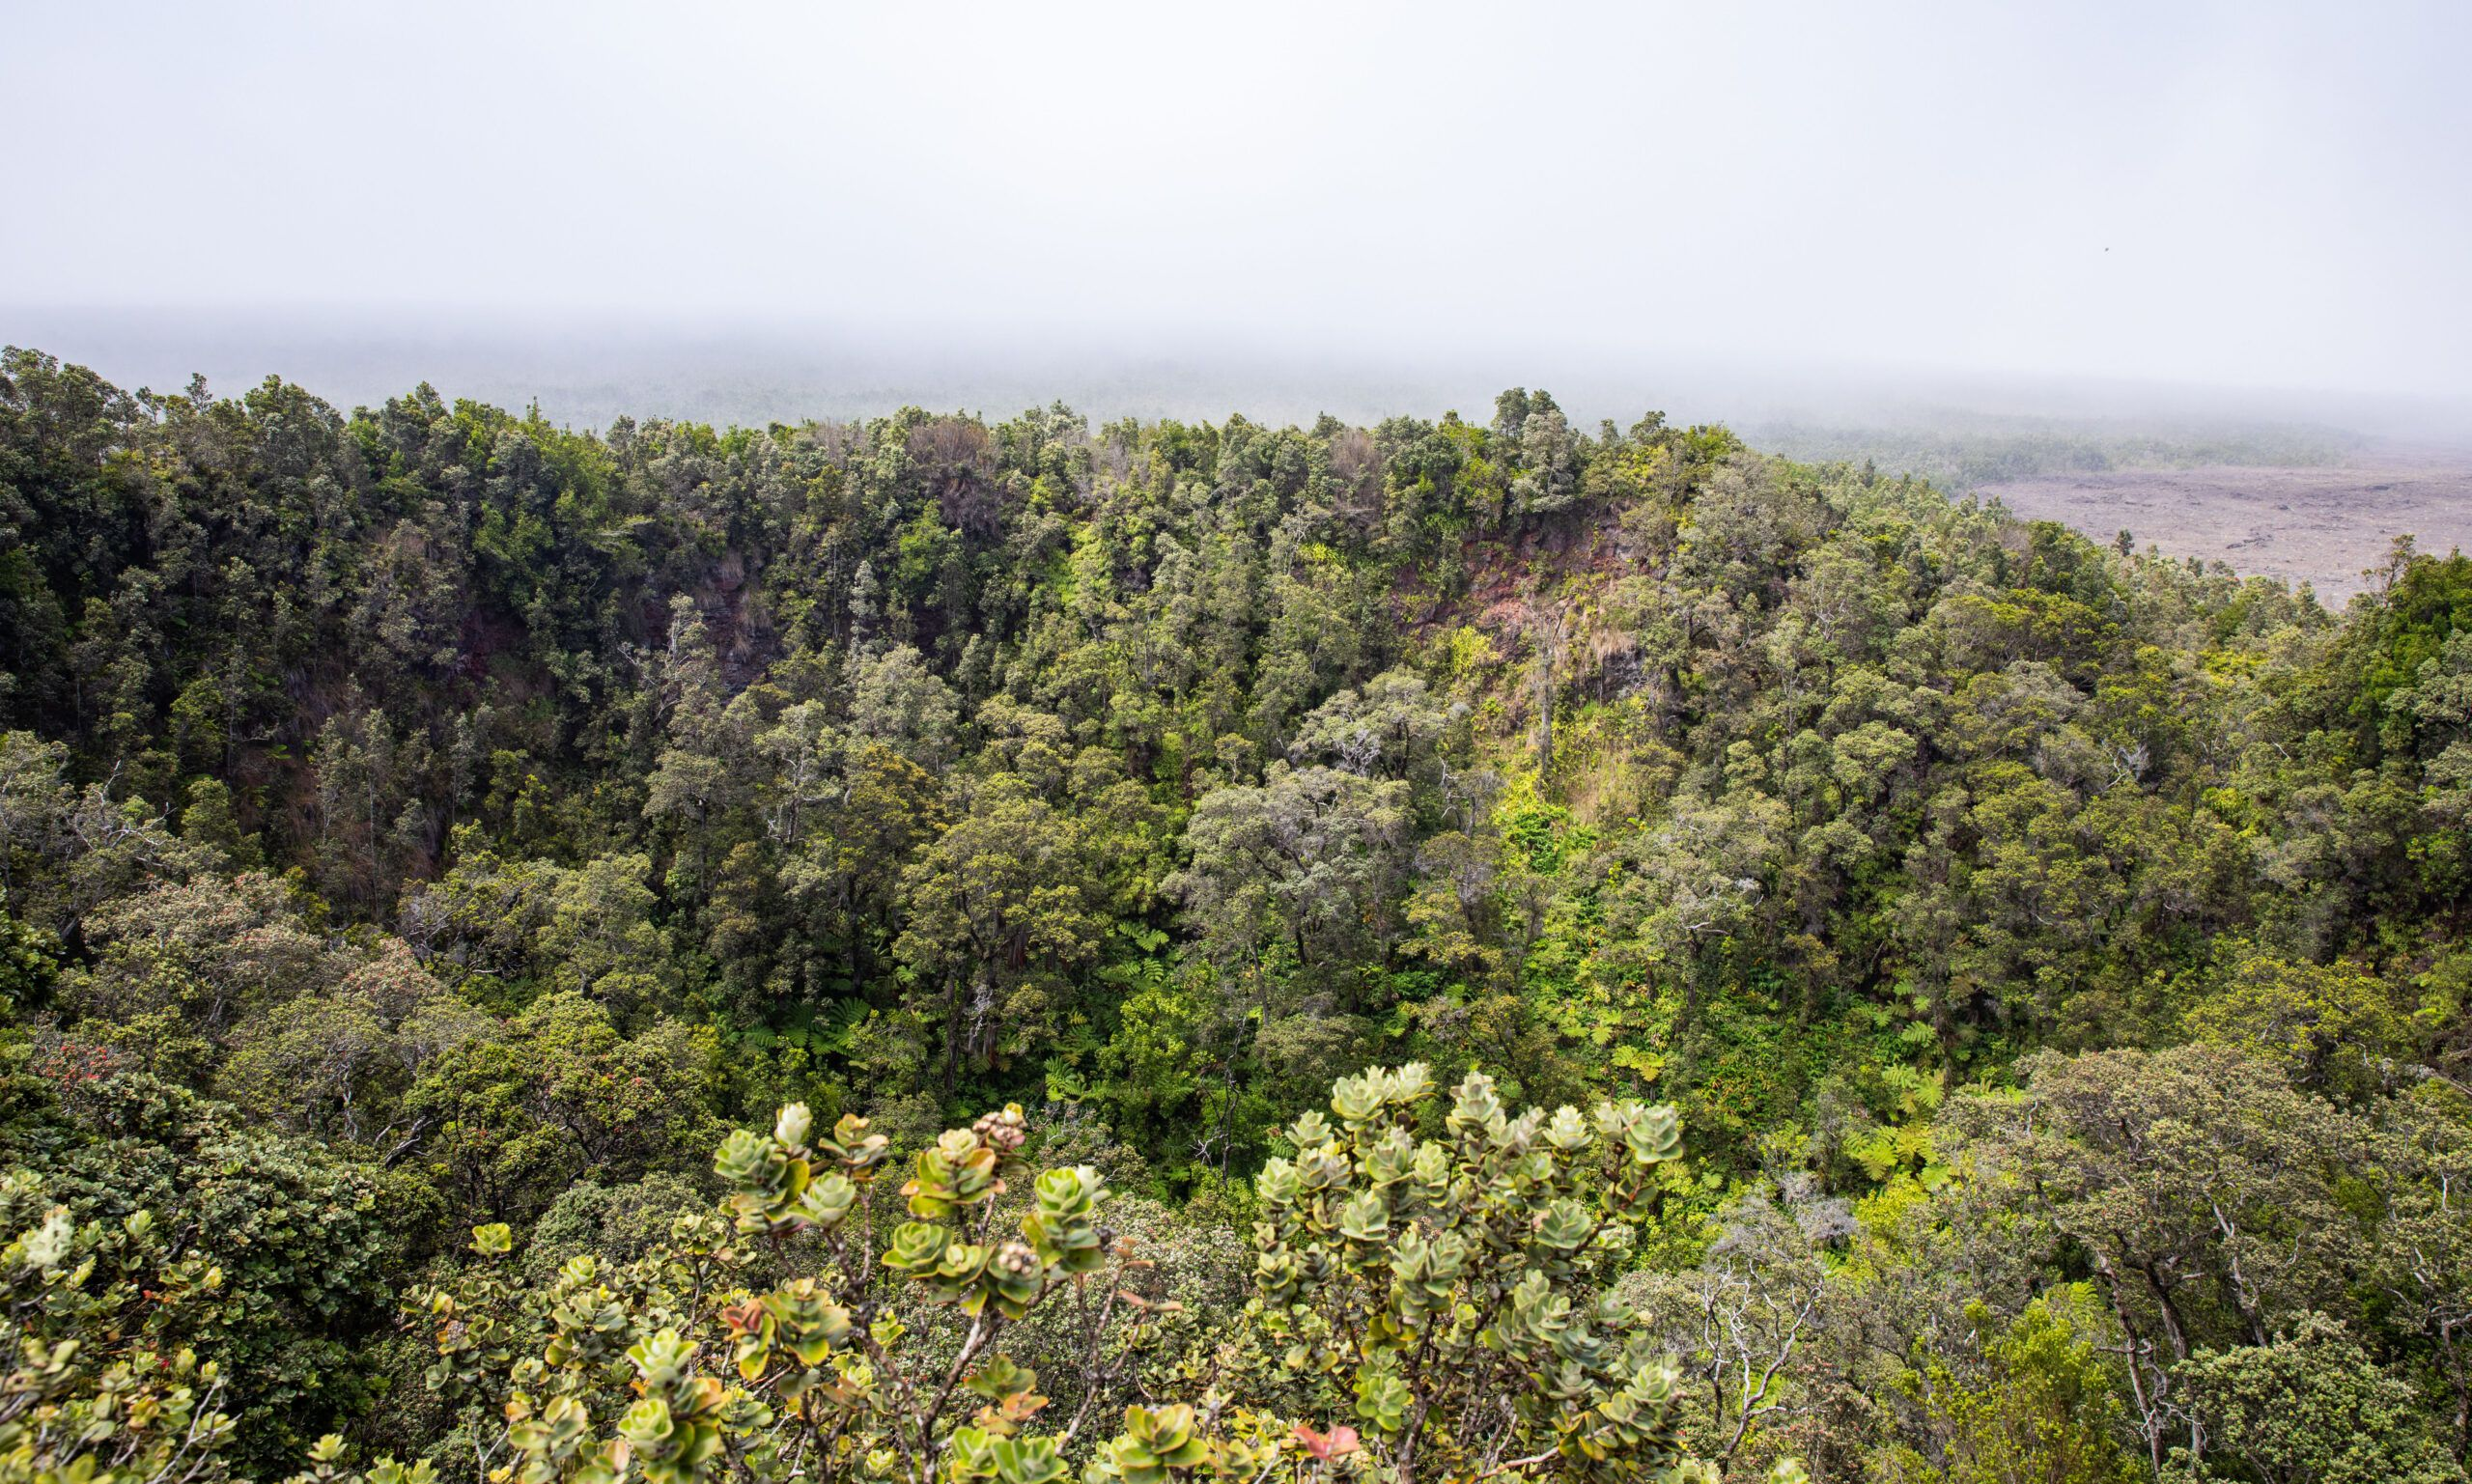 Puuhuluhulu Cinder Cone things to do in Hawai'i Volcanoes National Park